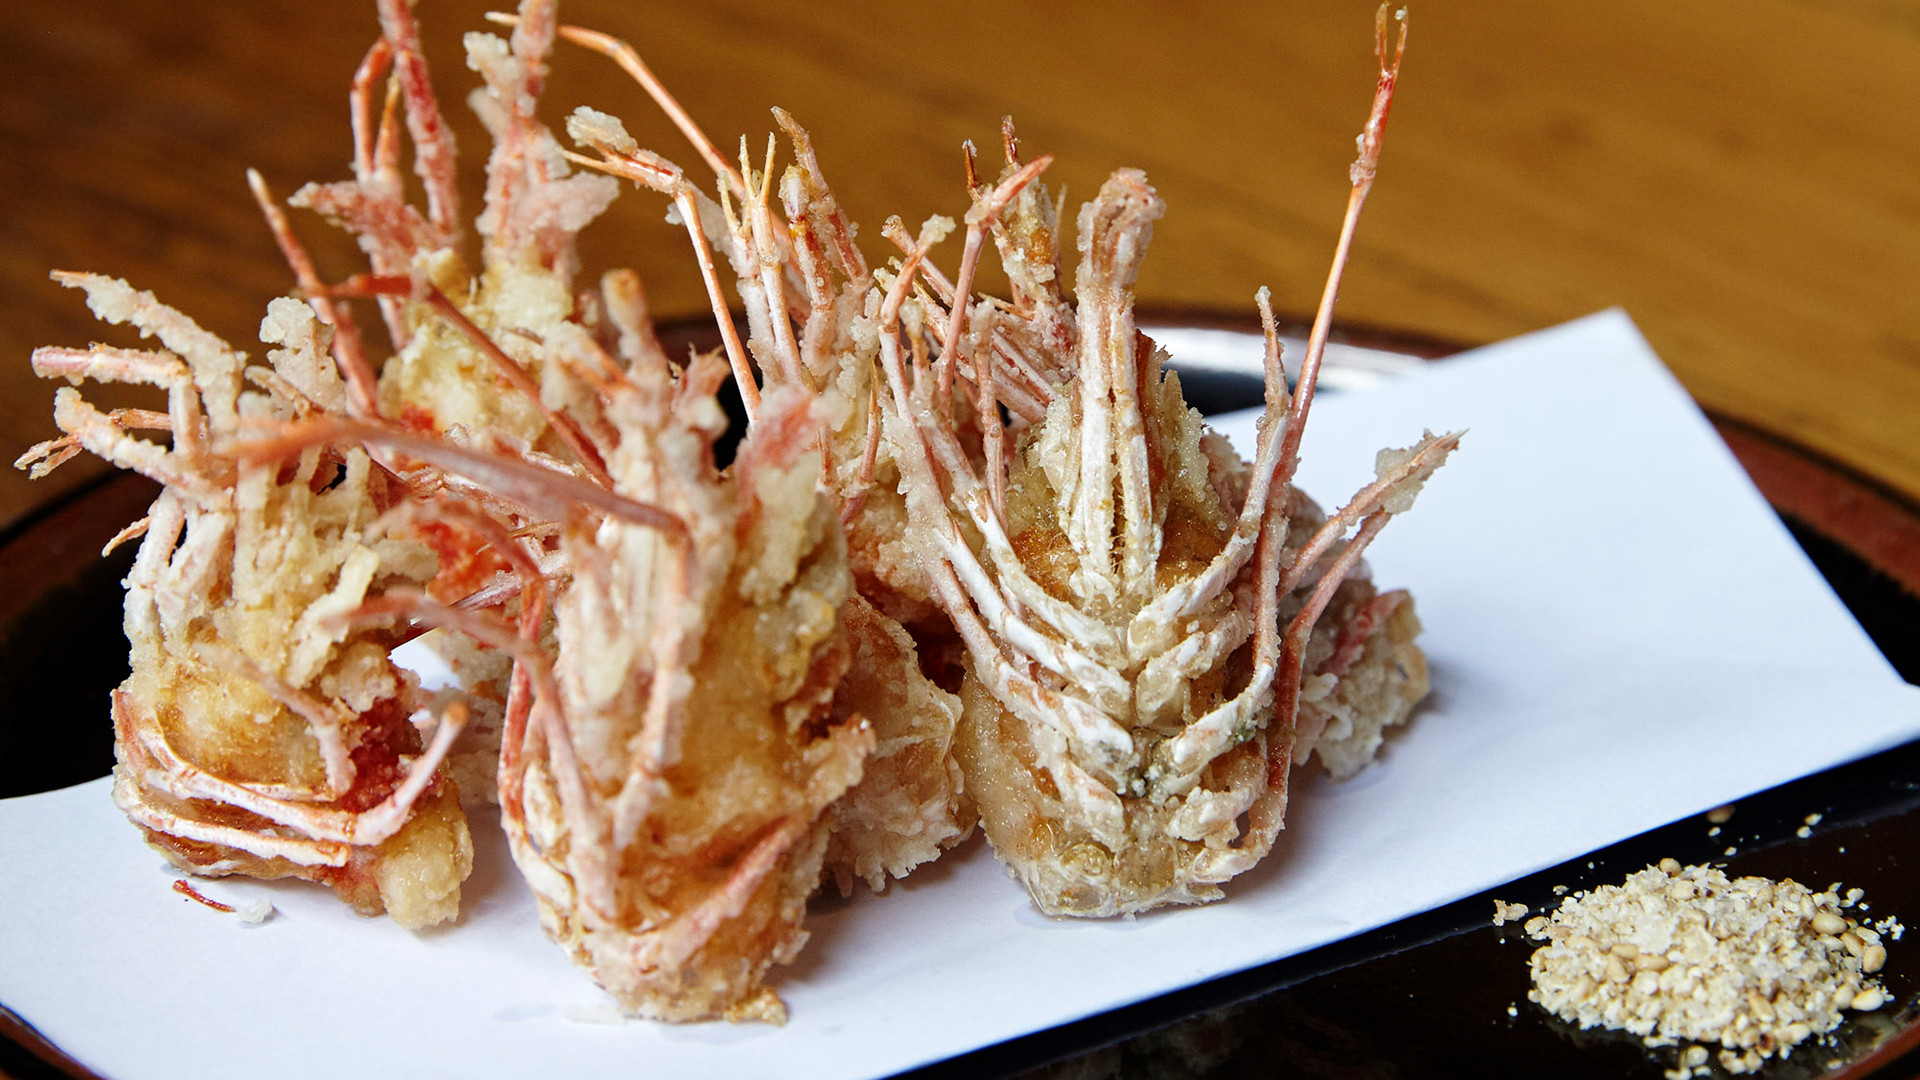 Deep fried prawn heads from Koya in the city